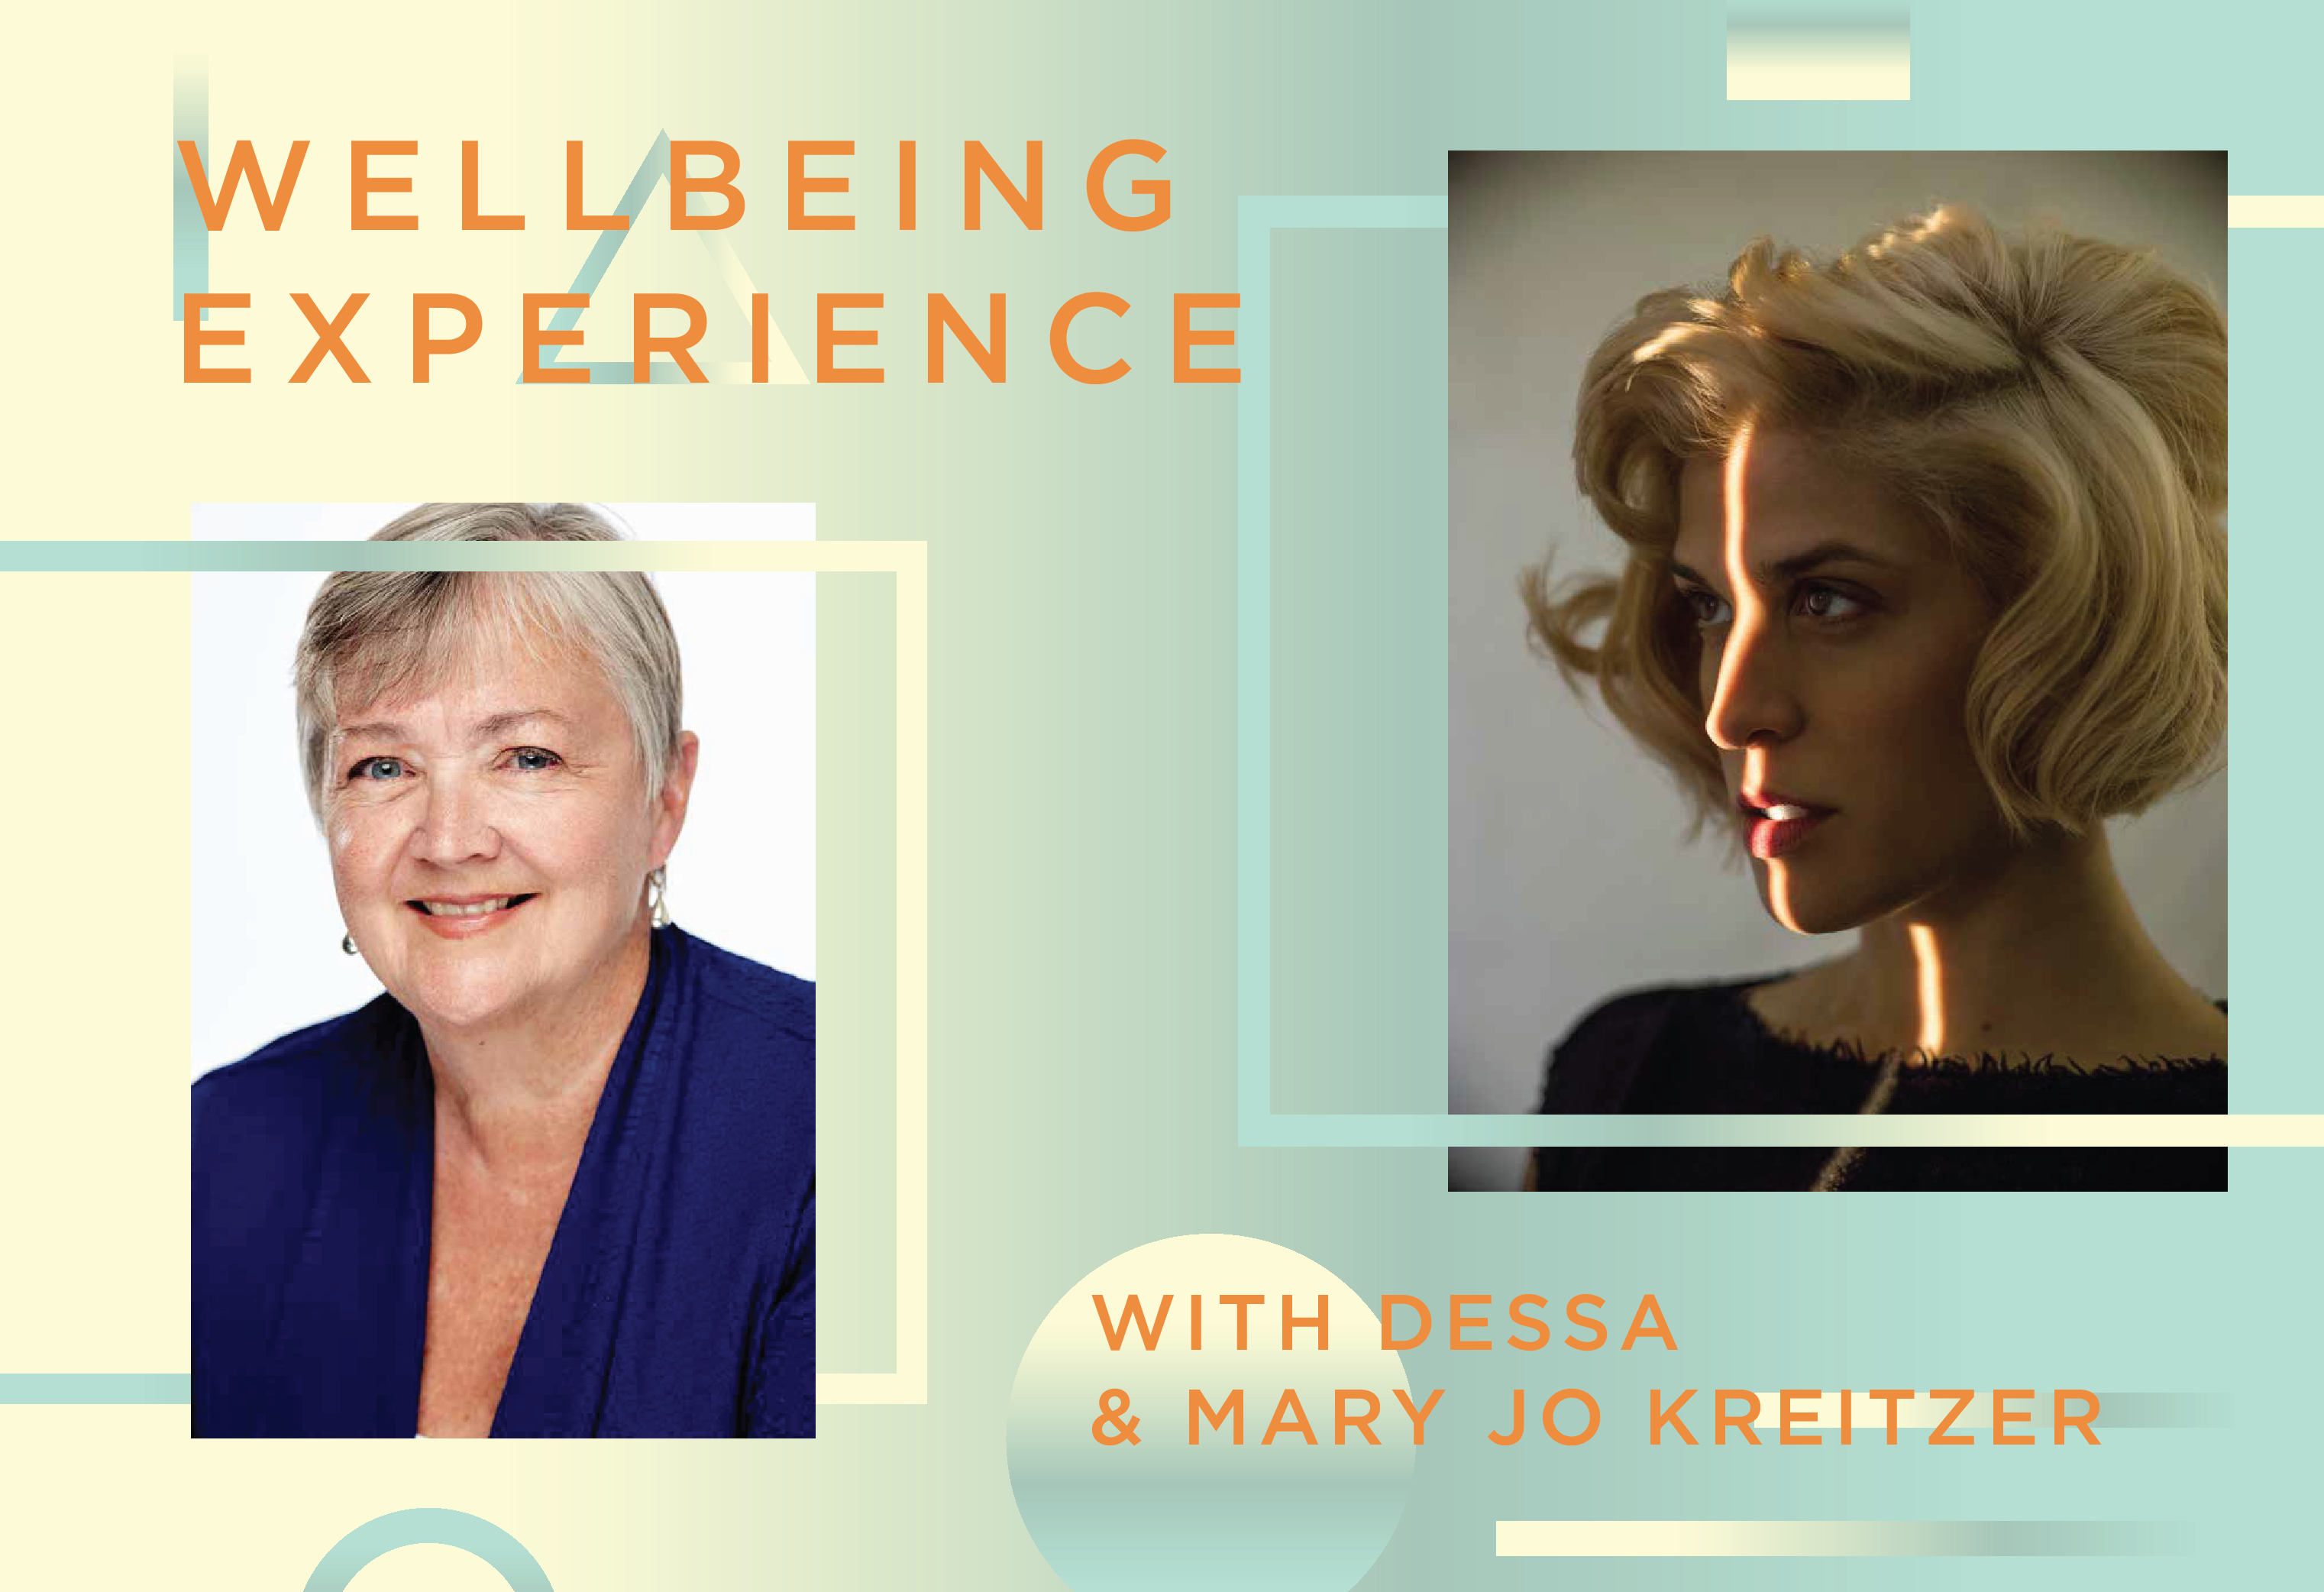 Wellbeing Experience with Dessa and Mary Jo Kreitzer on Nov. 16